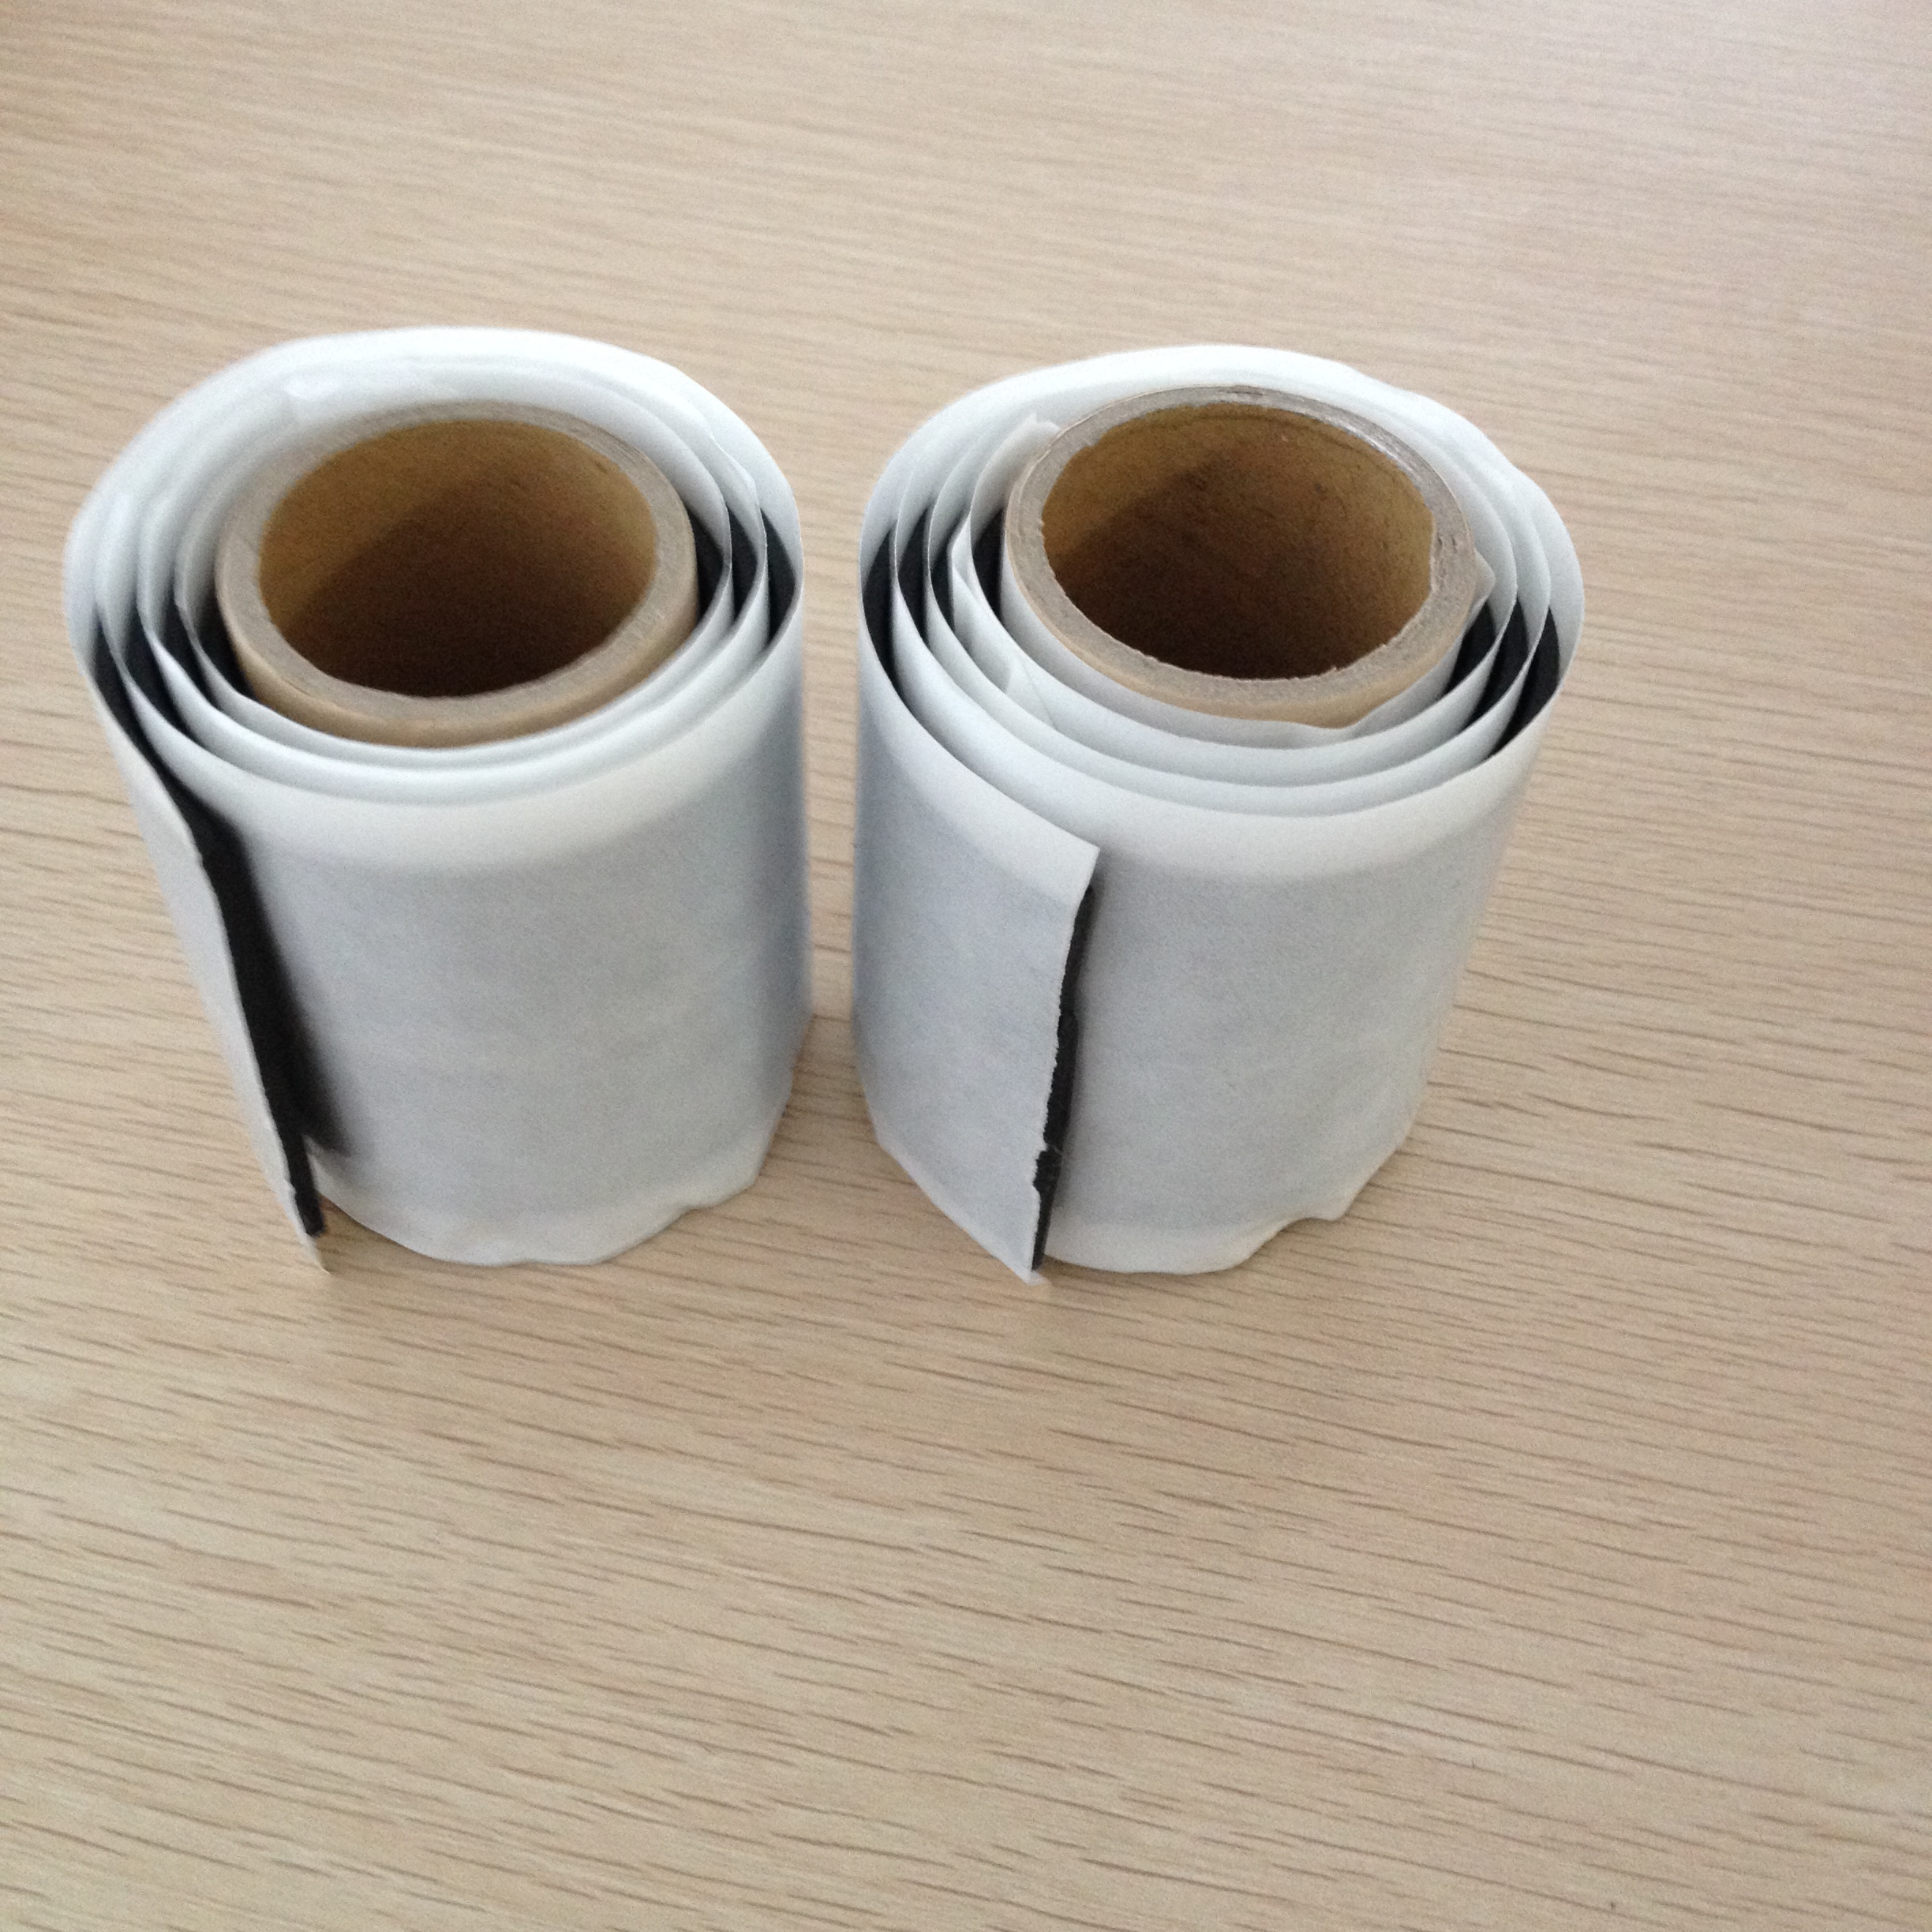 Self-adhesive double sided butyl rubber tape